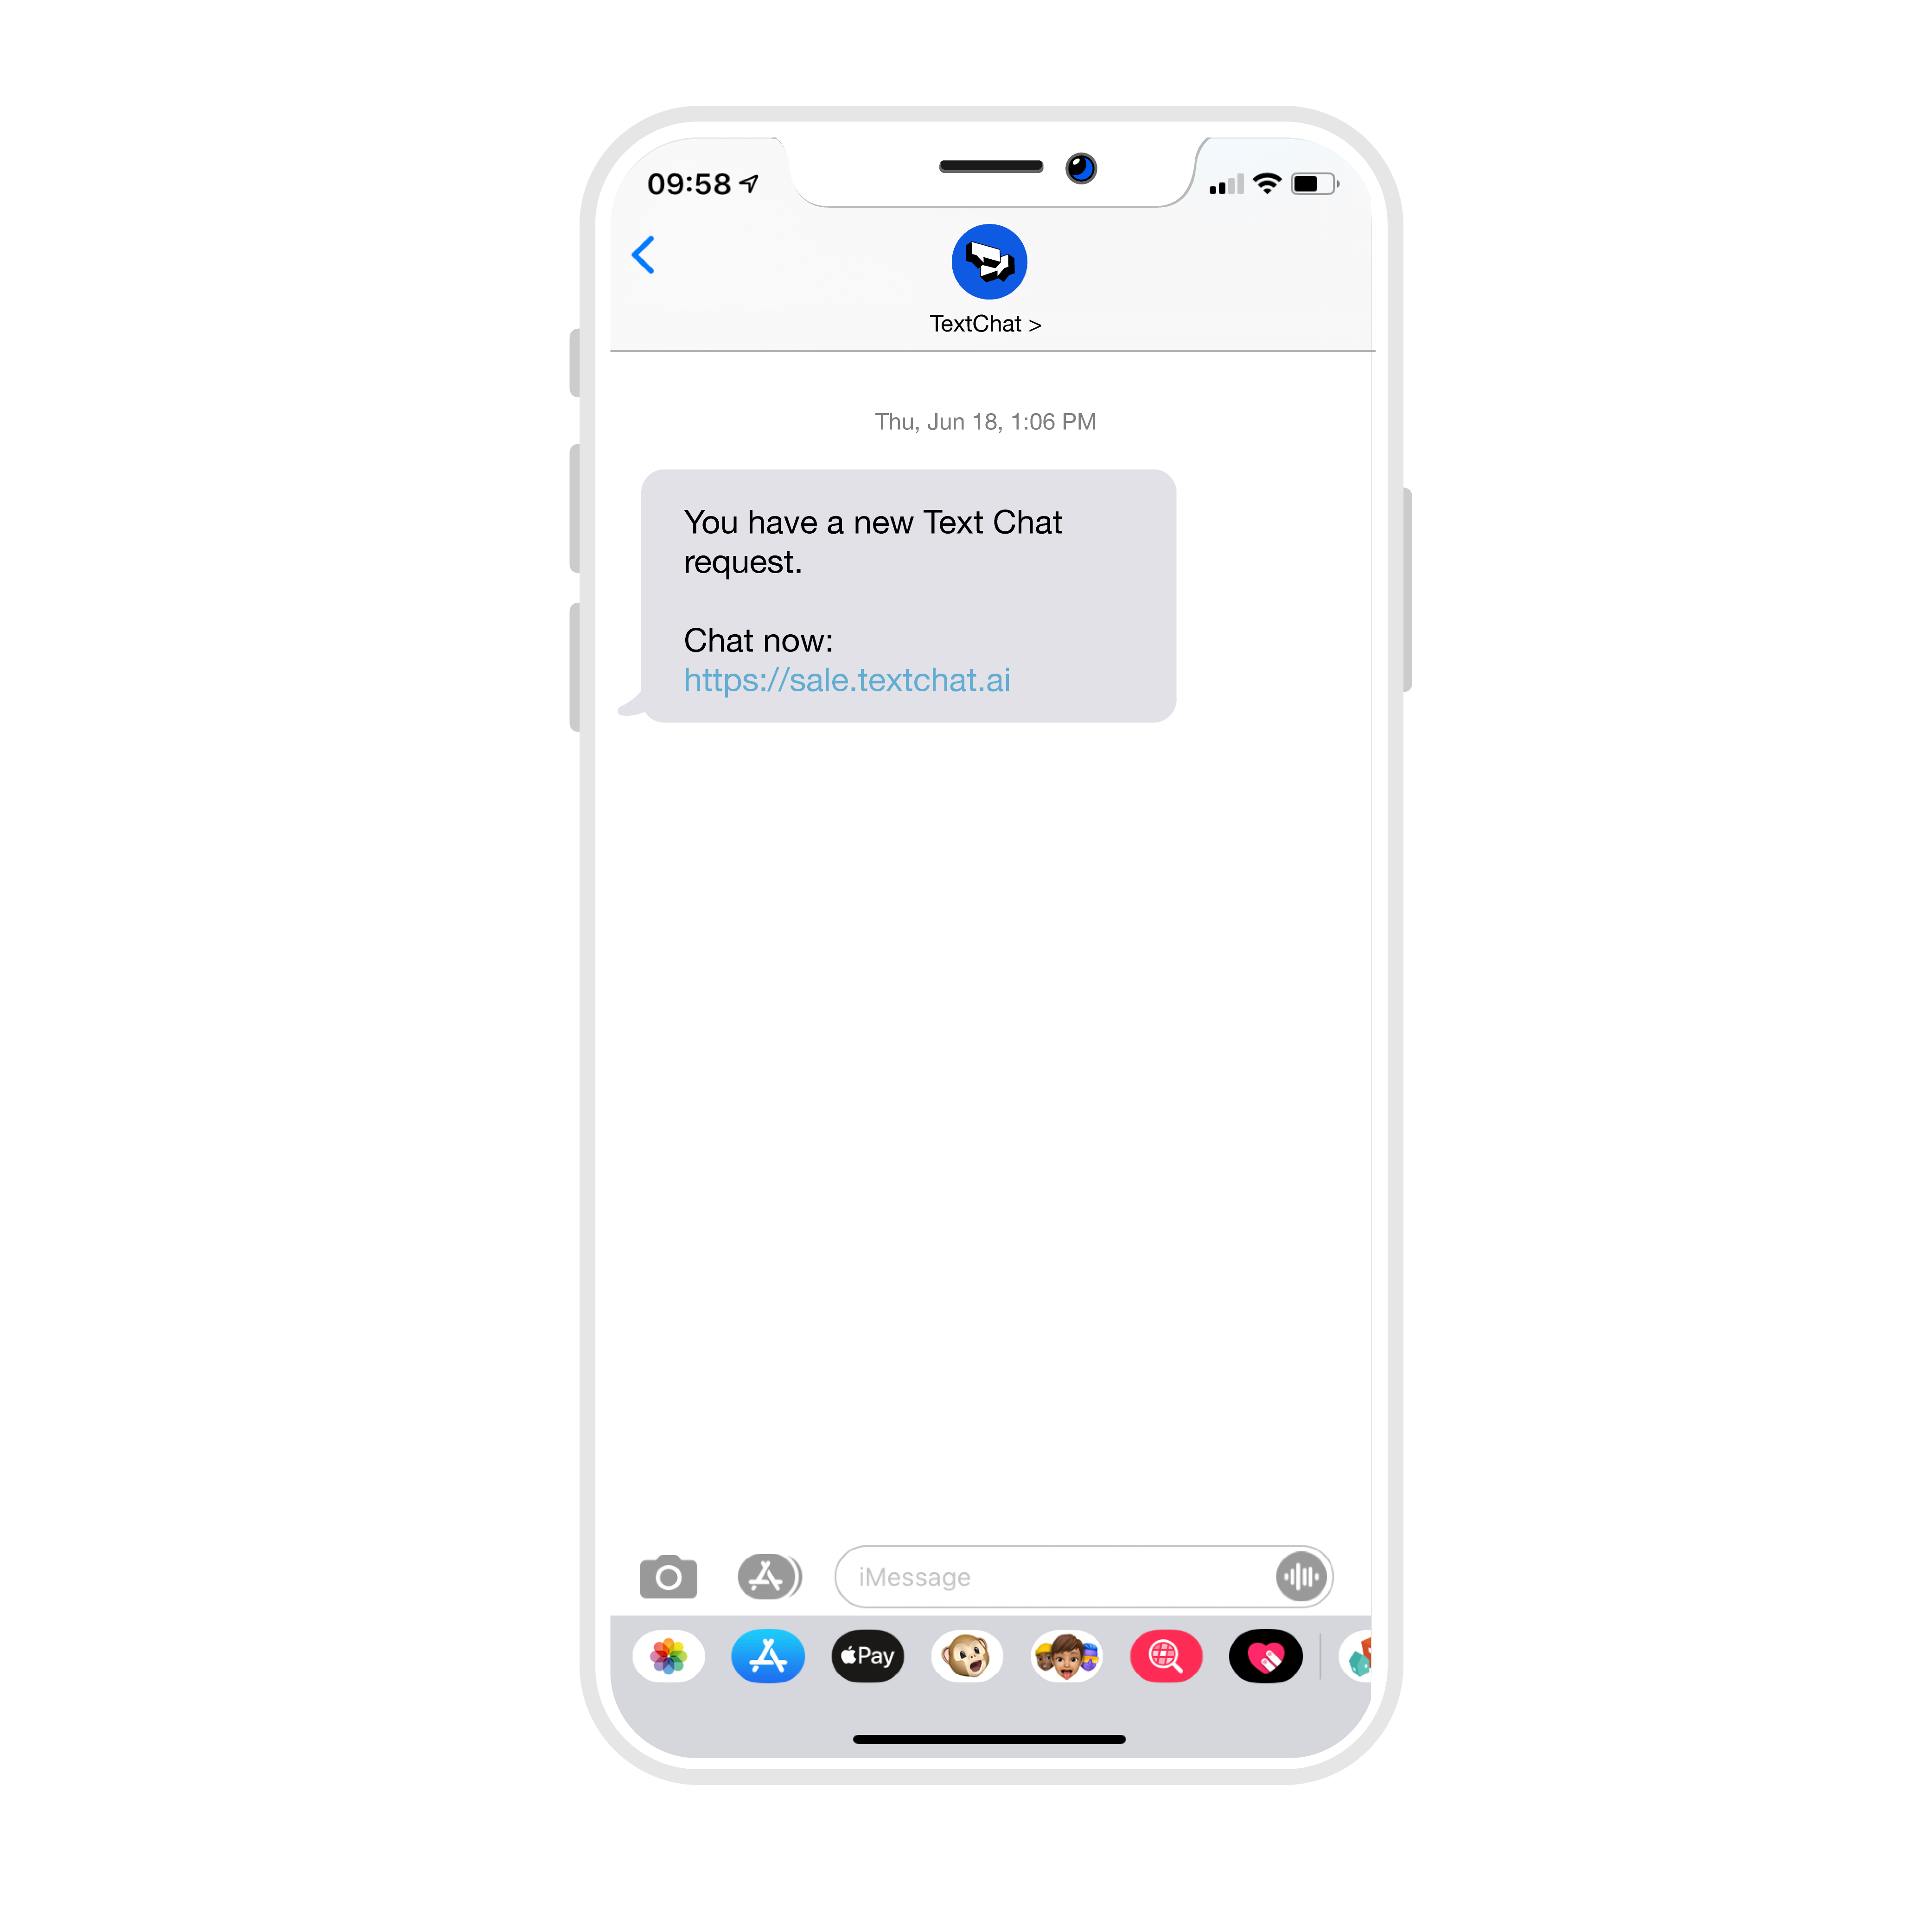 TextChat notification in an iPhone text messaging app